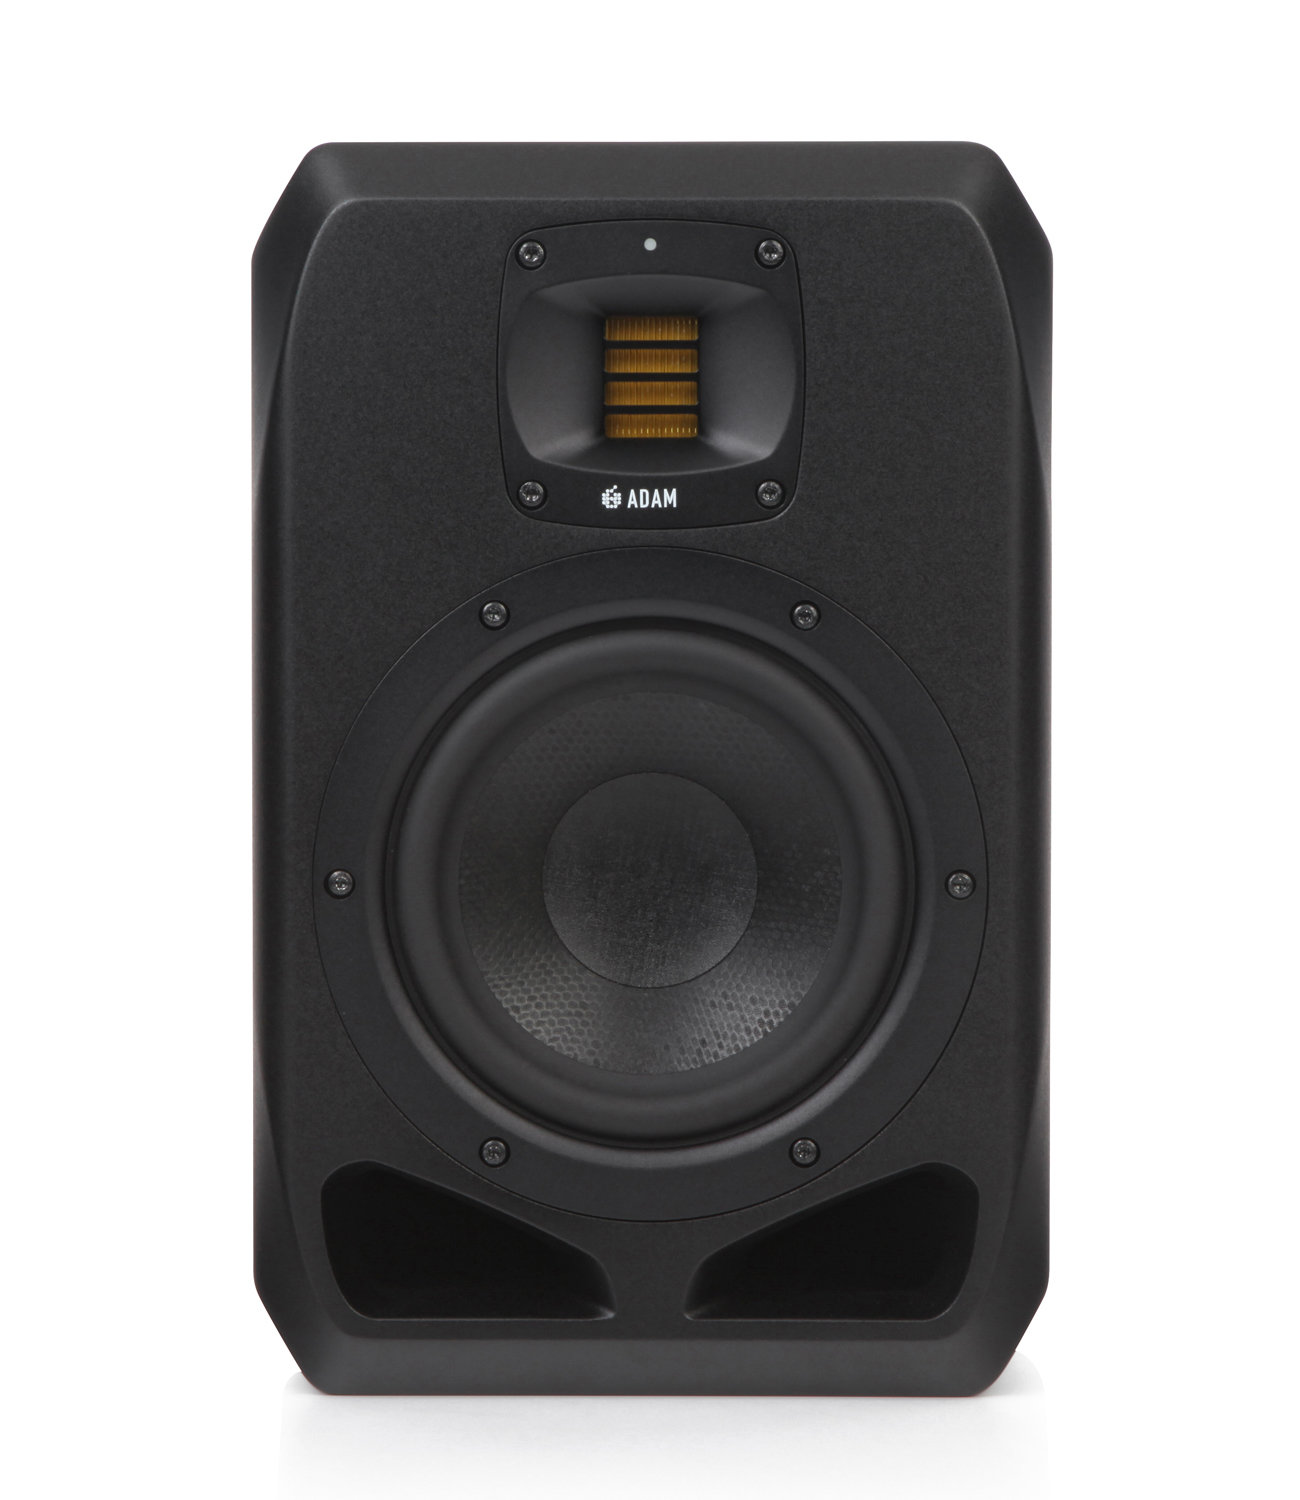 Adam S2V monitor speakers for control room